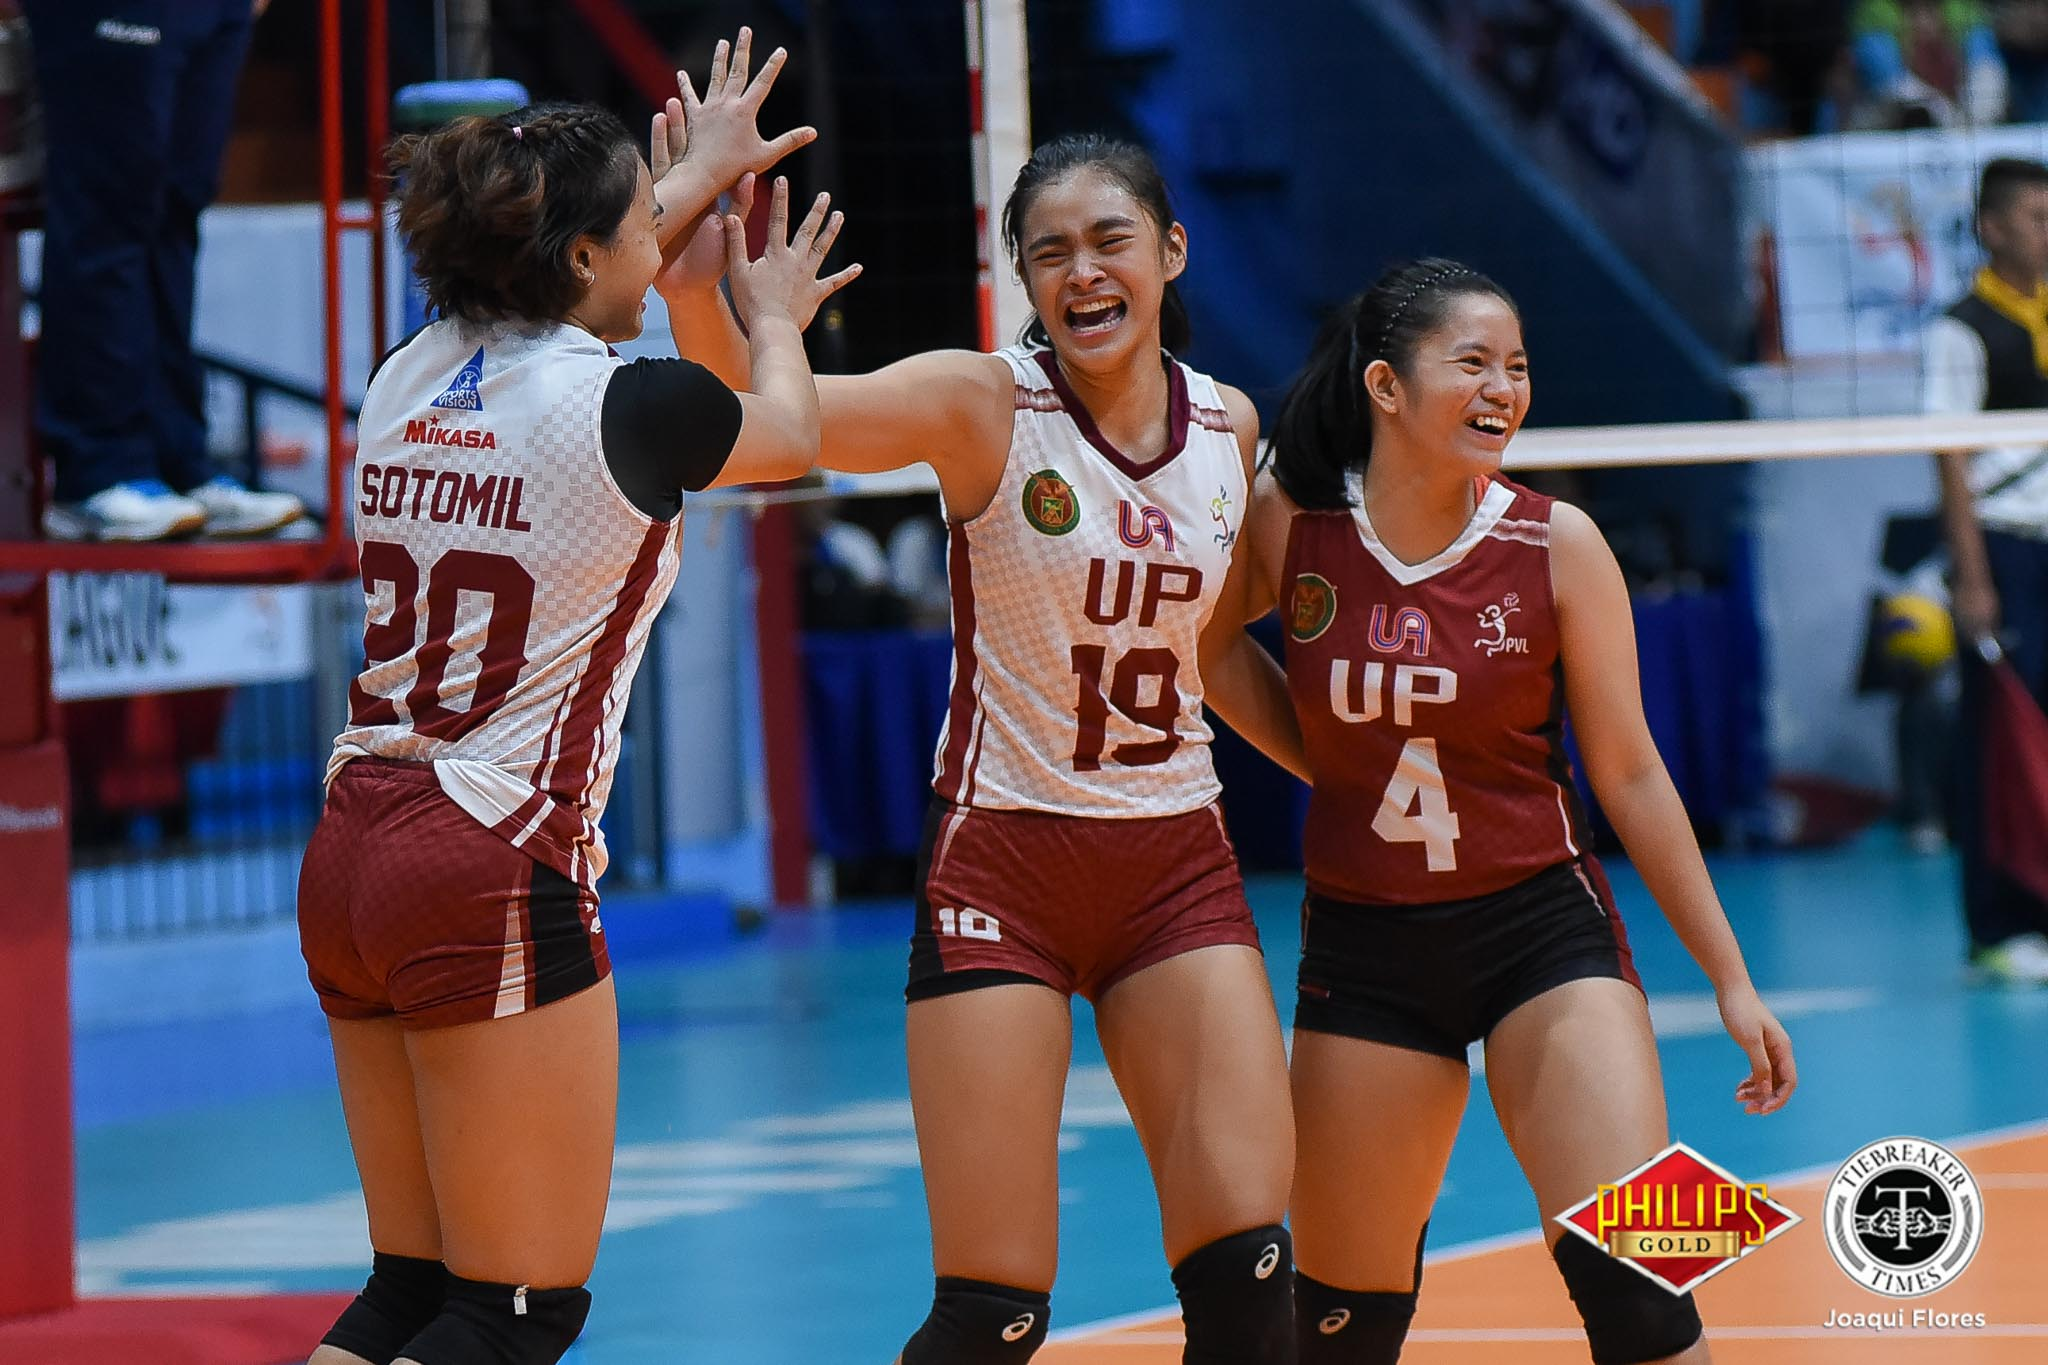 Tiebreaker Times UP storms back, gains ground on first major title in decades FEU News PVL UP Volleyball  UP Women's Volleyball Roselyn Rosier Rem Altomea Isa Molde Heather Guino-o Godfrey Okumu George Pascua FEU Women's Volleyball Celine Domingo Arielle Estranero 2018 PVL Women's Collegiate Conference 2018 PVL Season